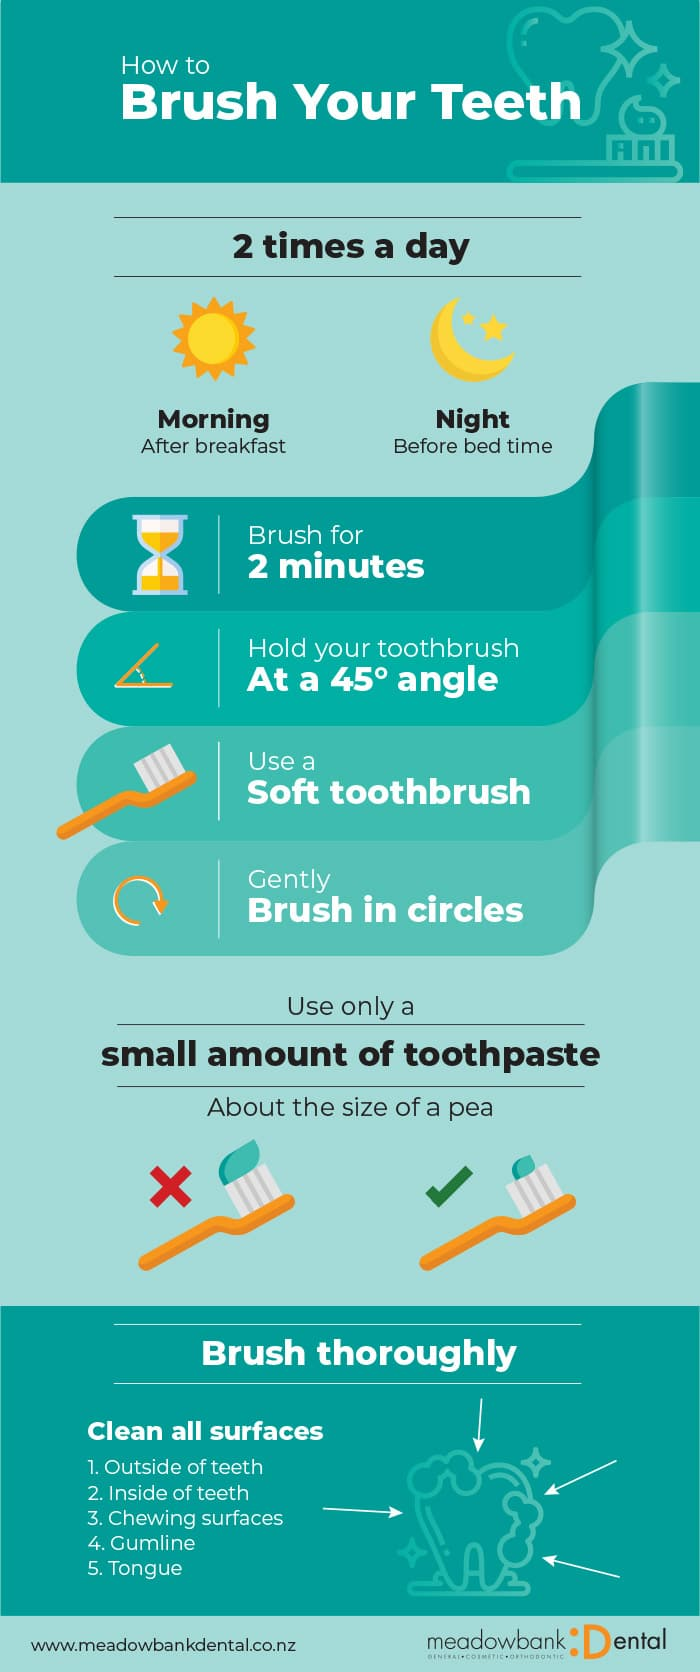 How to brush your teeth infographic - How to brush your teeth correctly